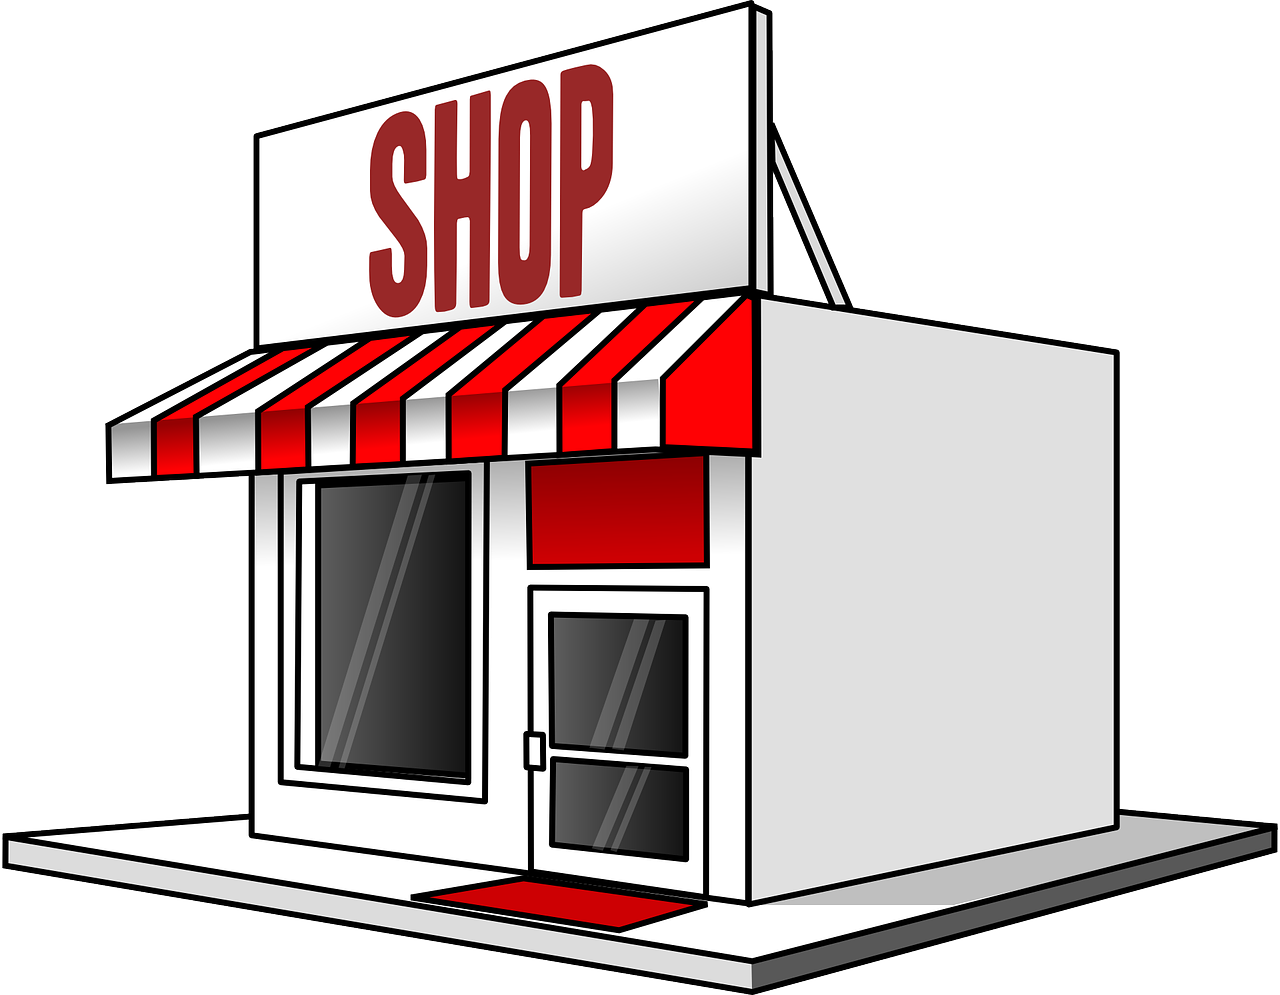 Grocery store building clipart black and white